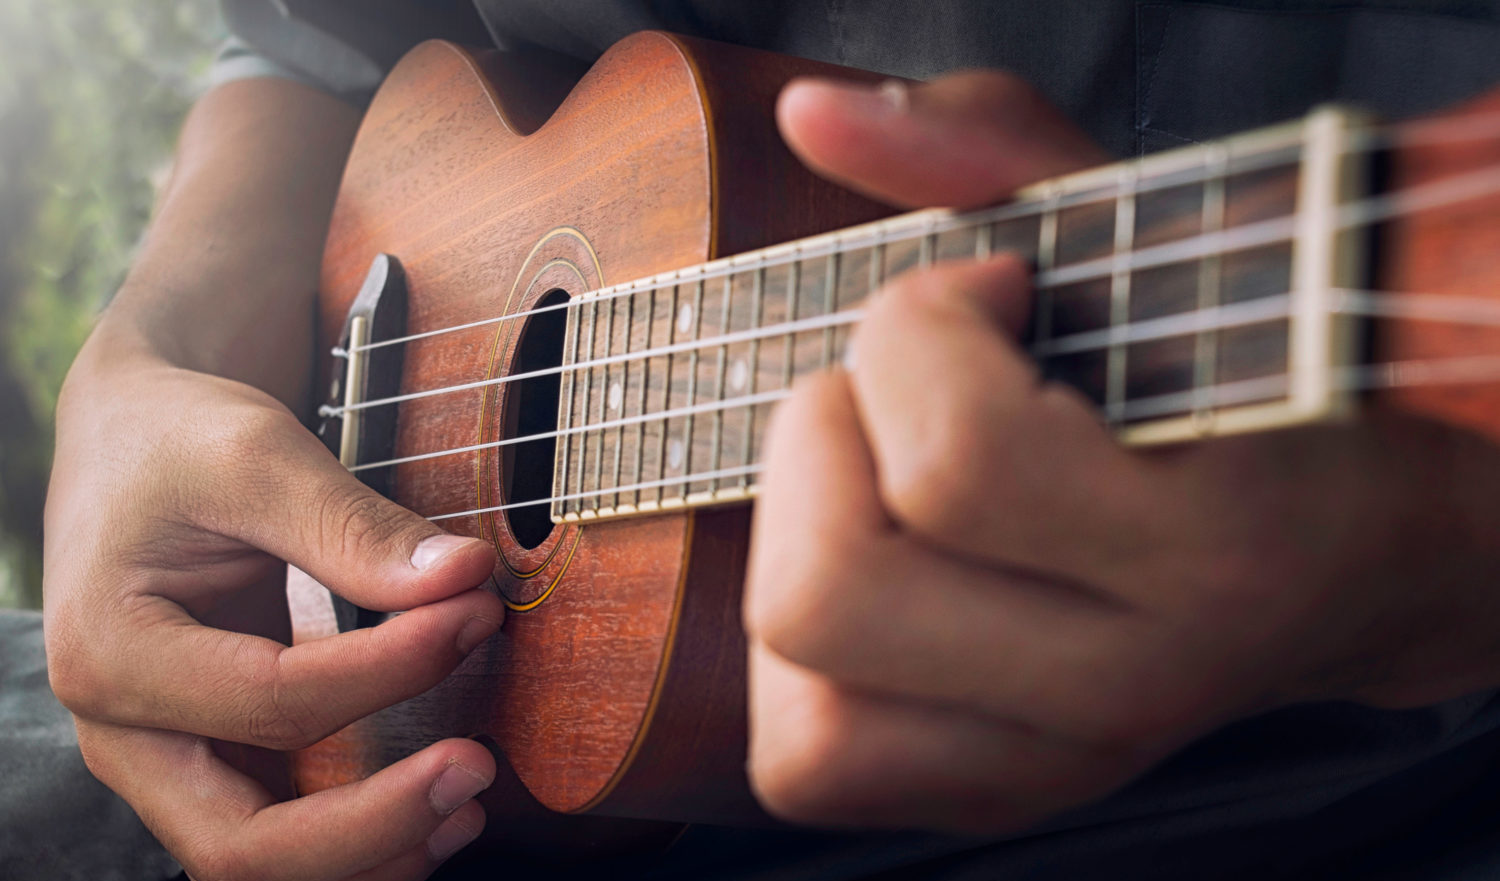 A man playing ukulele in close up view.